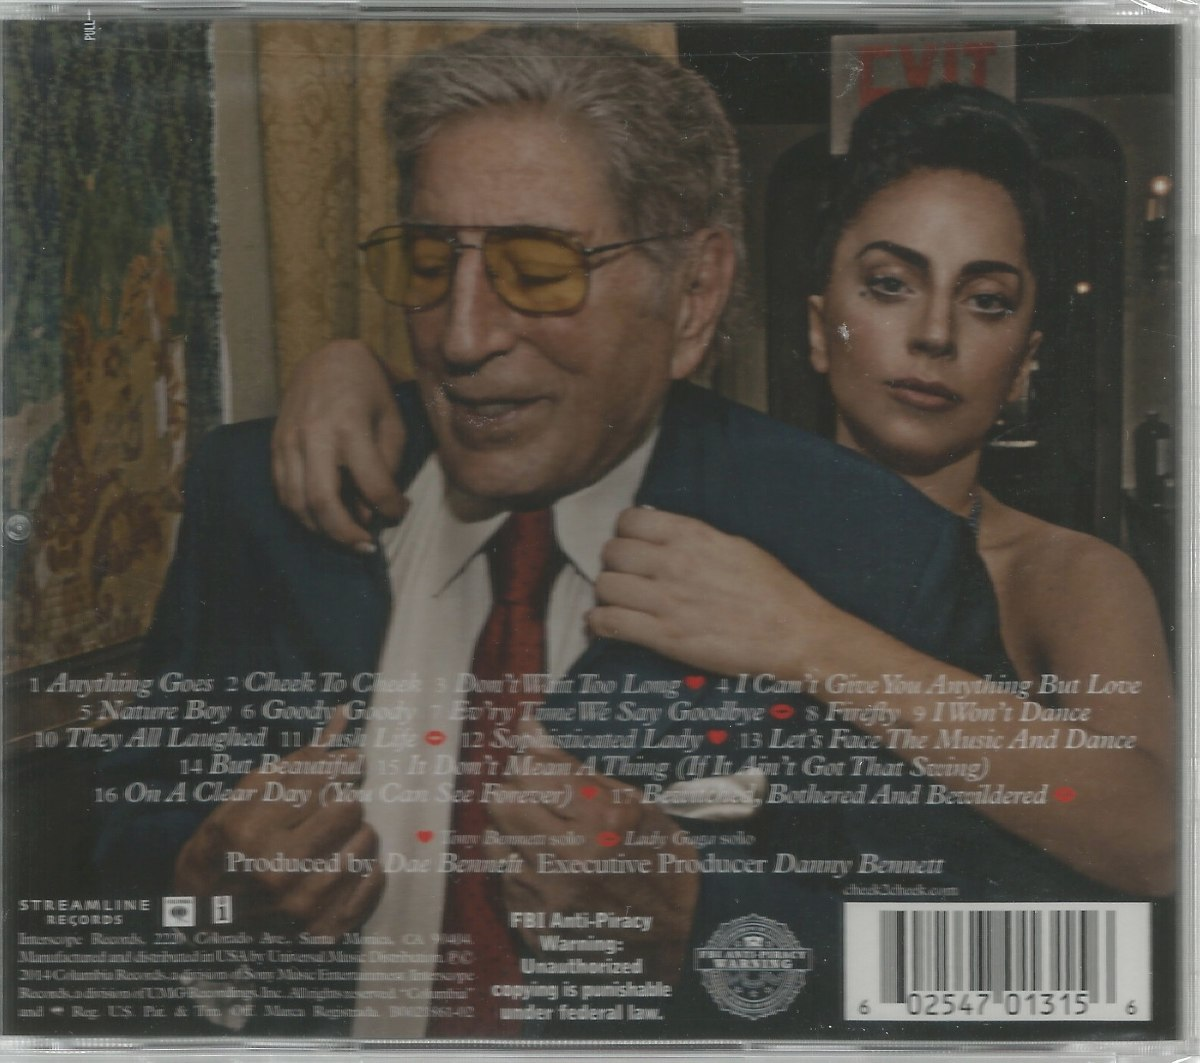 Cheek to Cheek is a collaborative album by American singers Tony Bennett and Lady Gaga. It was released on September 19, by Interscope and Columbia Records. Bennett and Gaga first met at the Robin Hood Foundation gala in New York City in